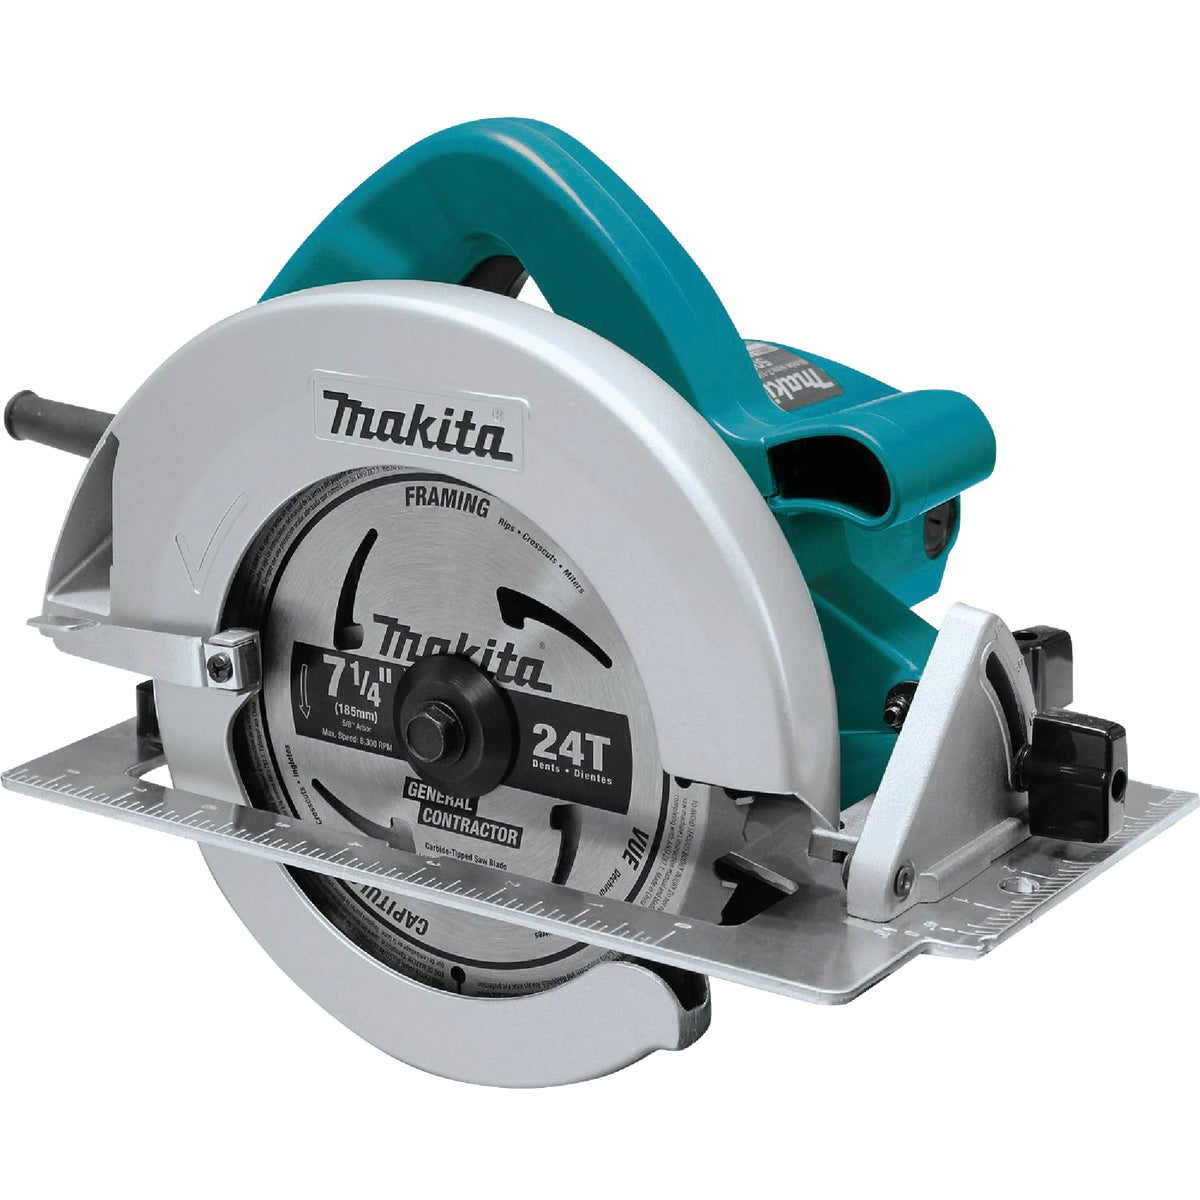 "7-1/4"" 15A CIRCULAR SAW - 5007F by Makita Usa Inc"